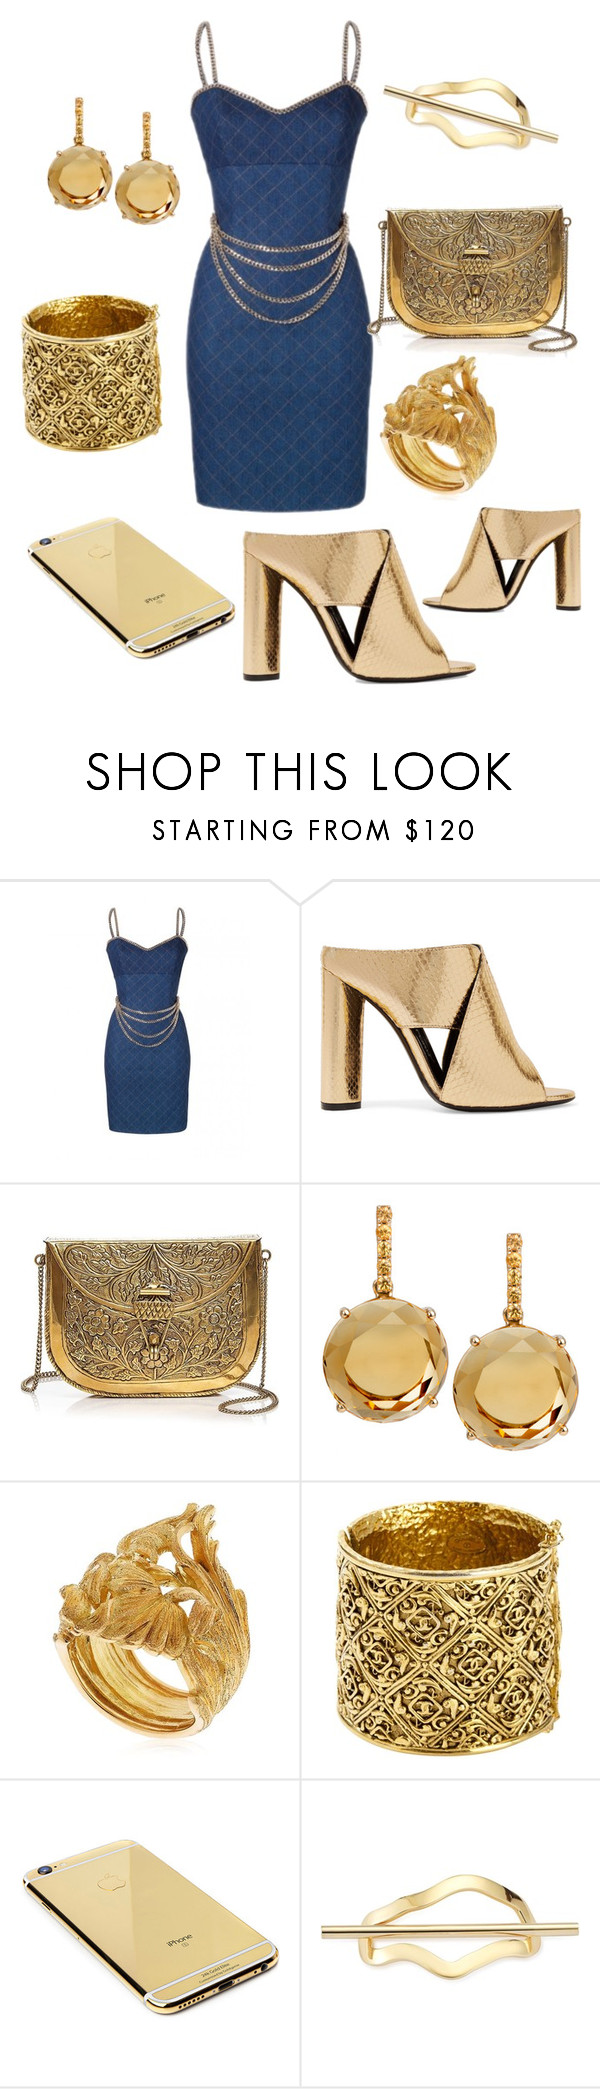 """""""denim"""" by diiannnnnnnnaa ❤ liked on Polyvore featuring Tom Ford, From St Xavier, Plukka, Vanzi, Chanel, Goldgenie and Elizabeth and James"""